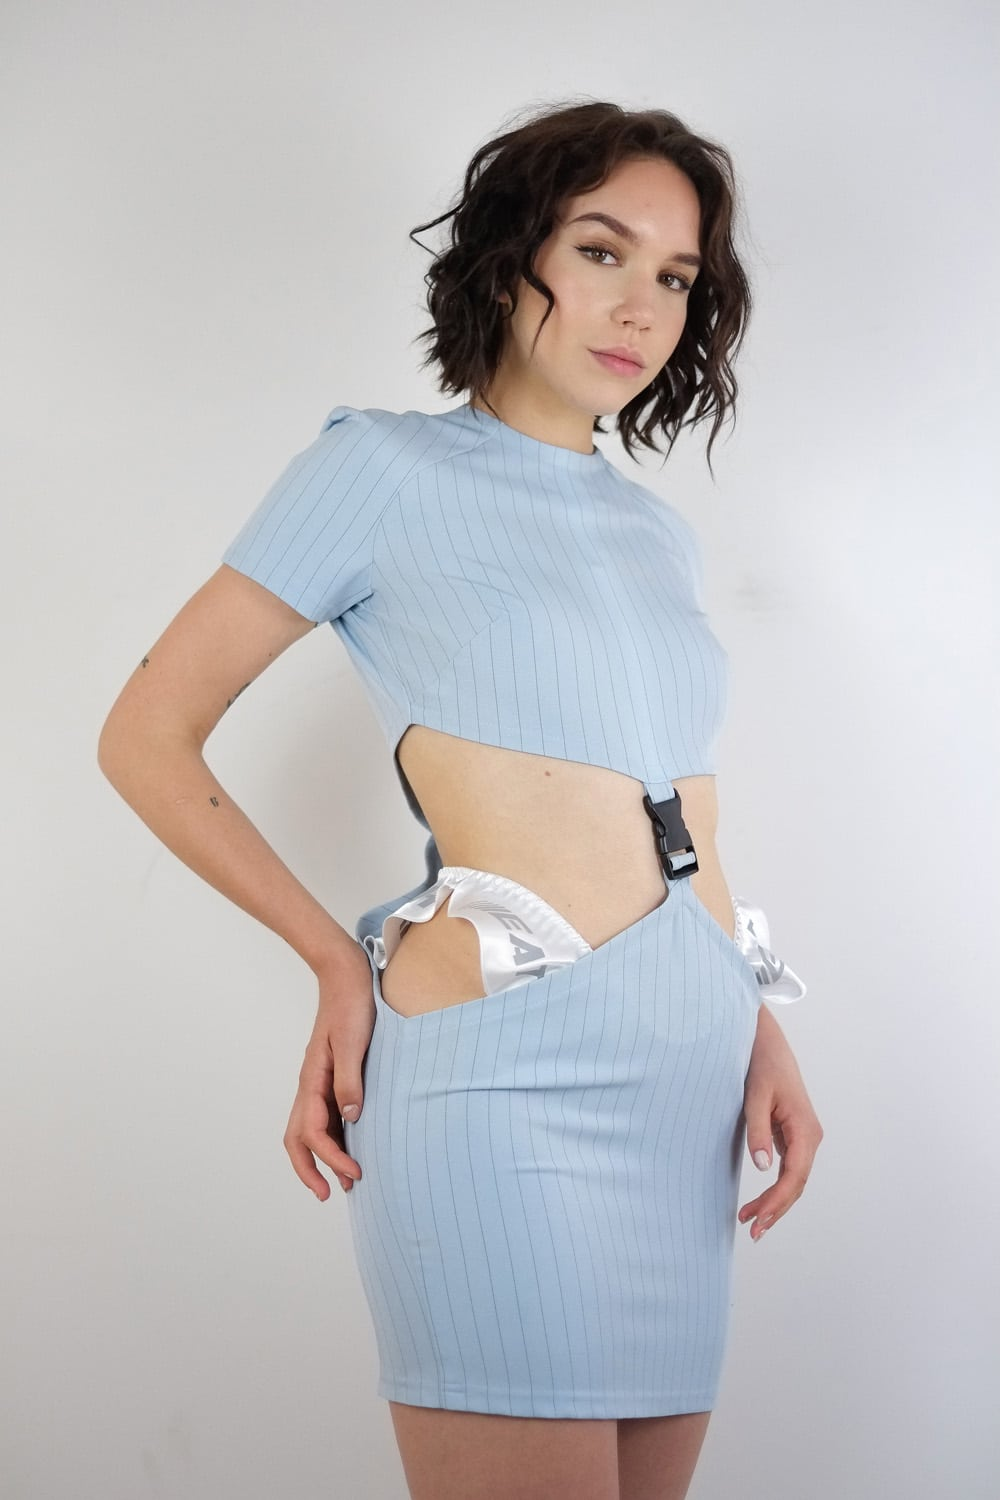 The Hourglass Office Dress 2